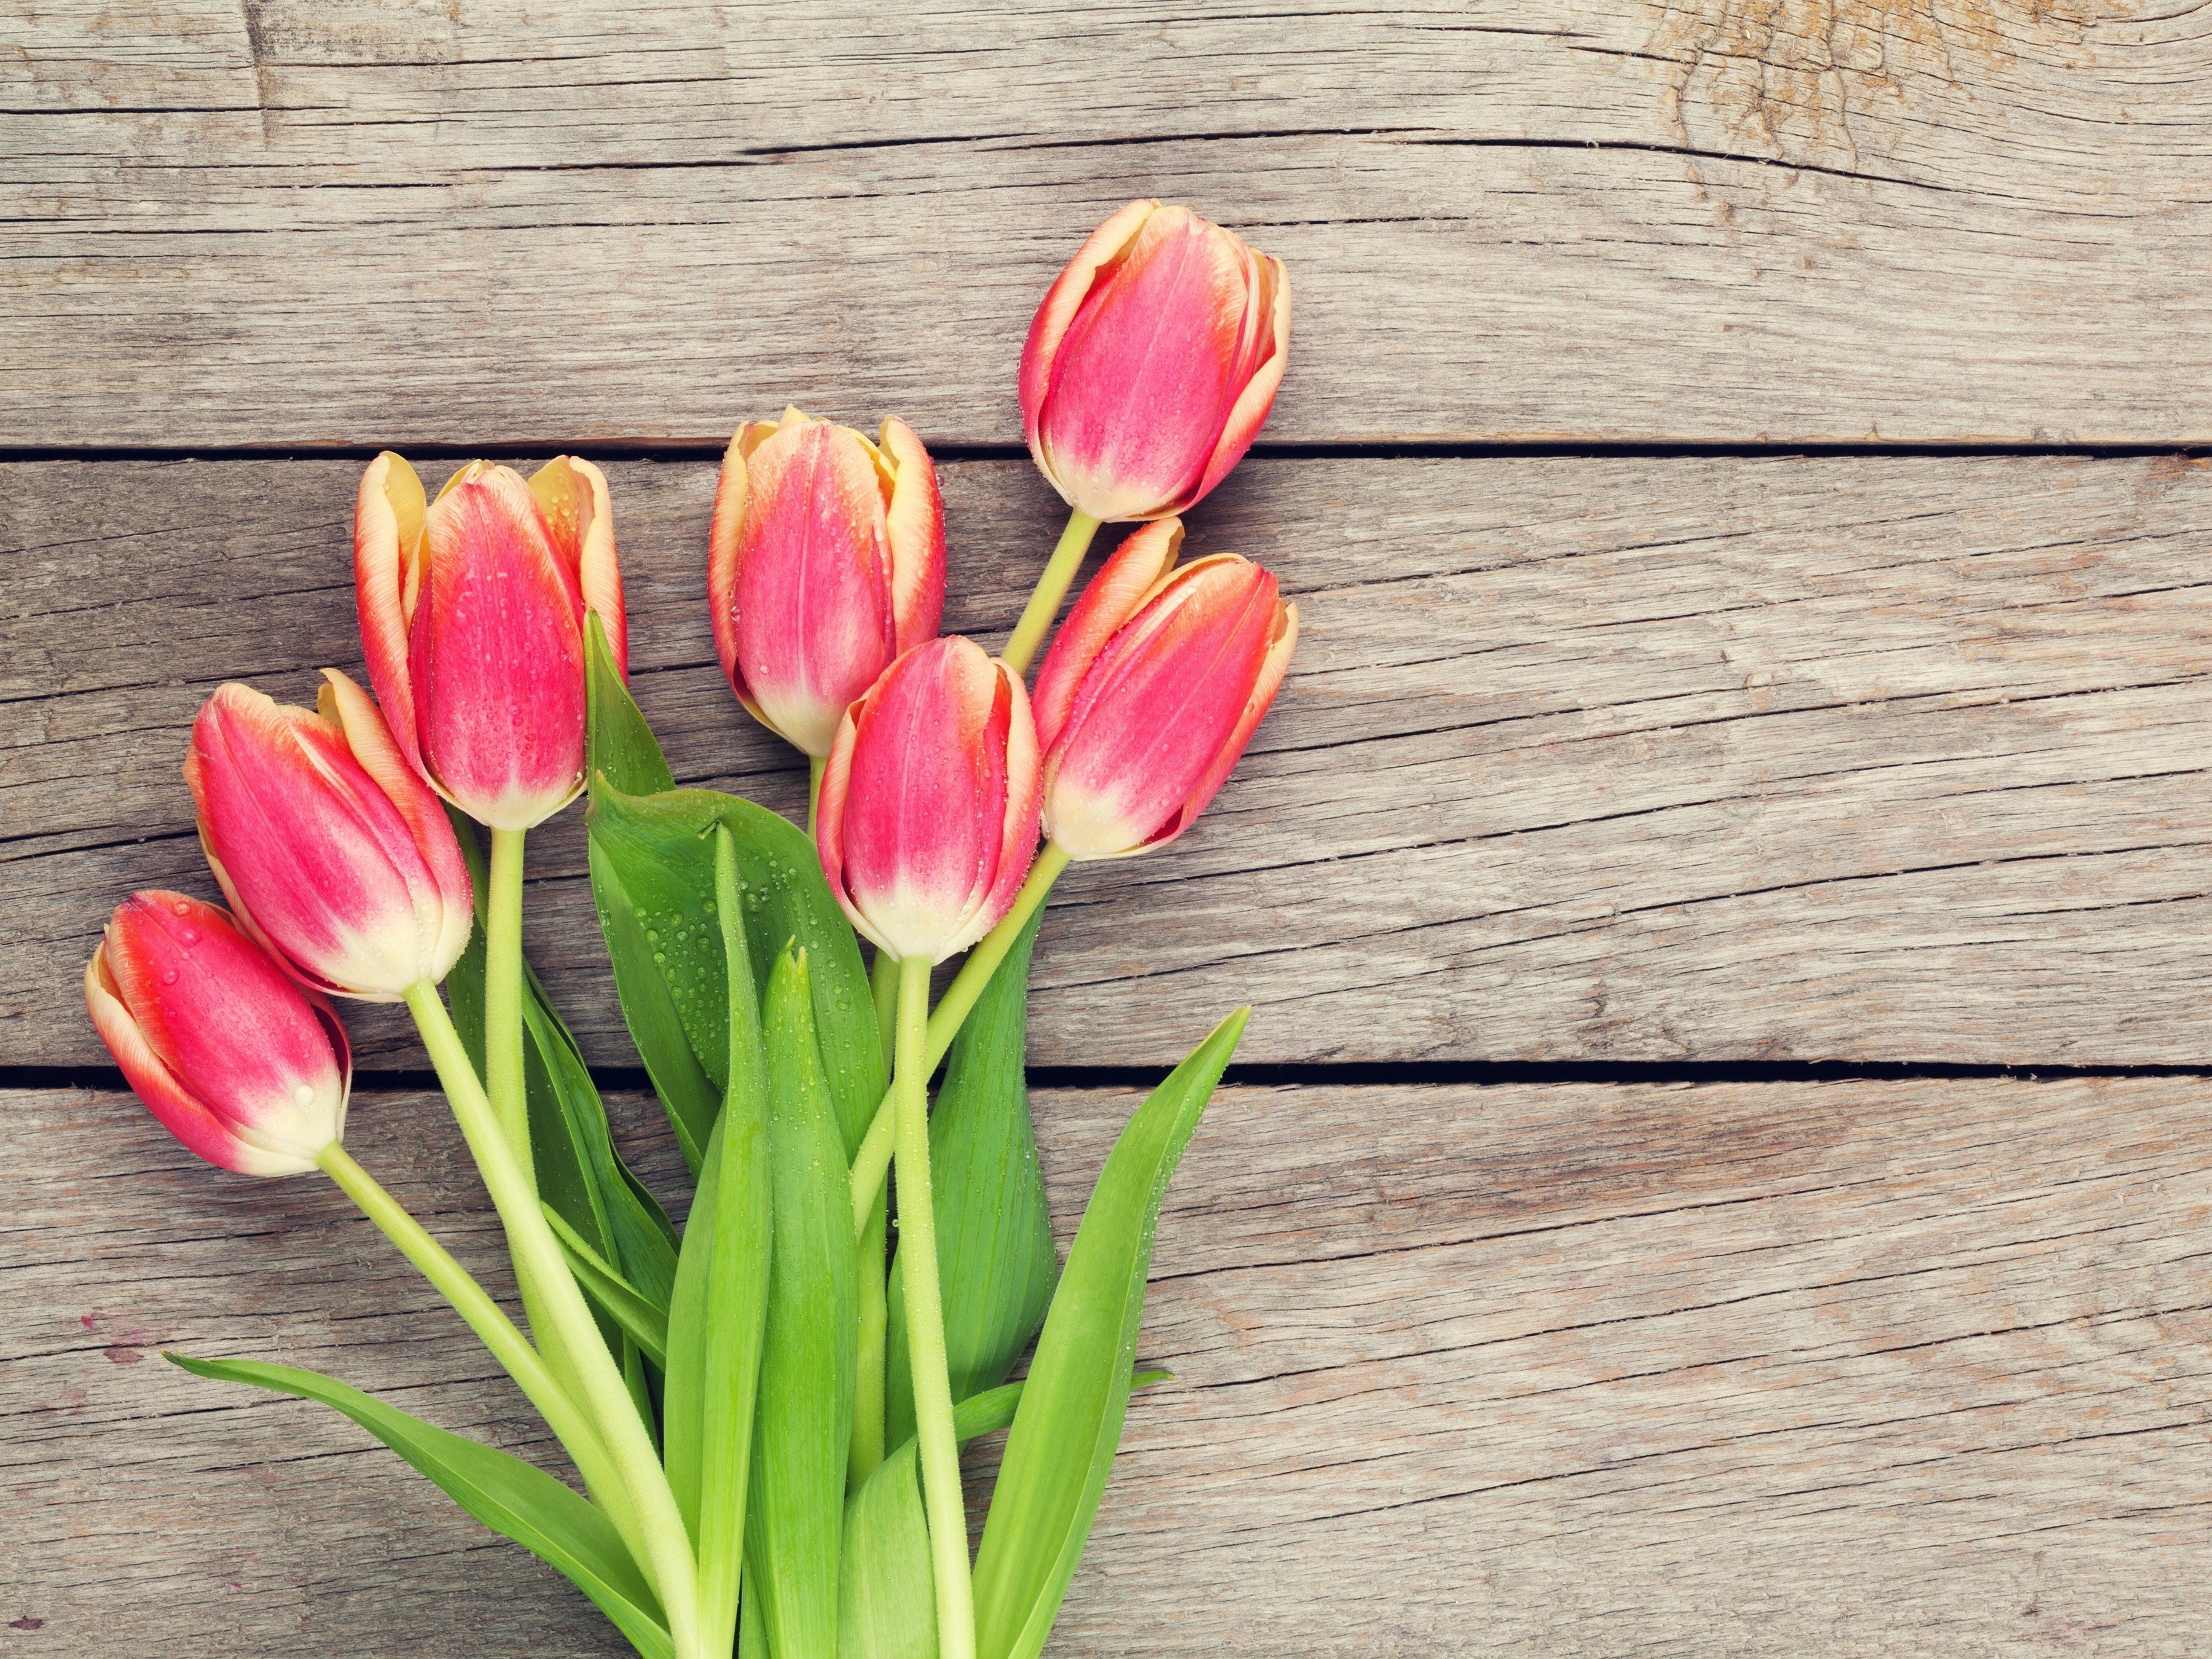 Flower Meanings: Tulips